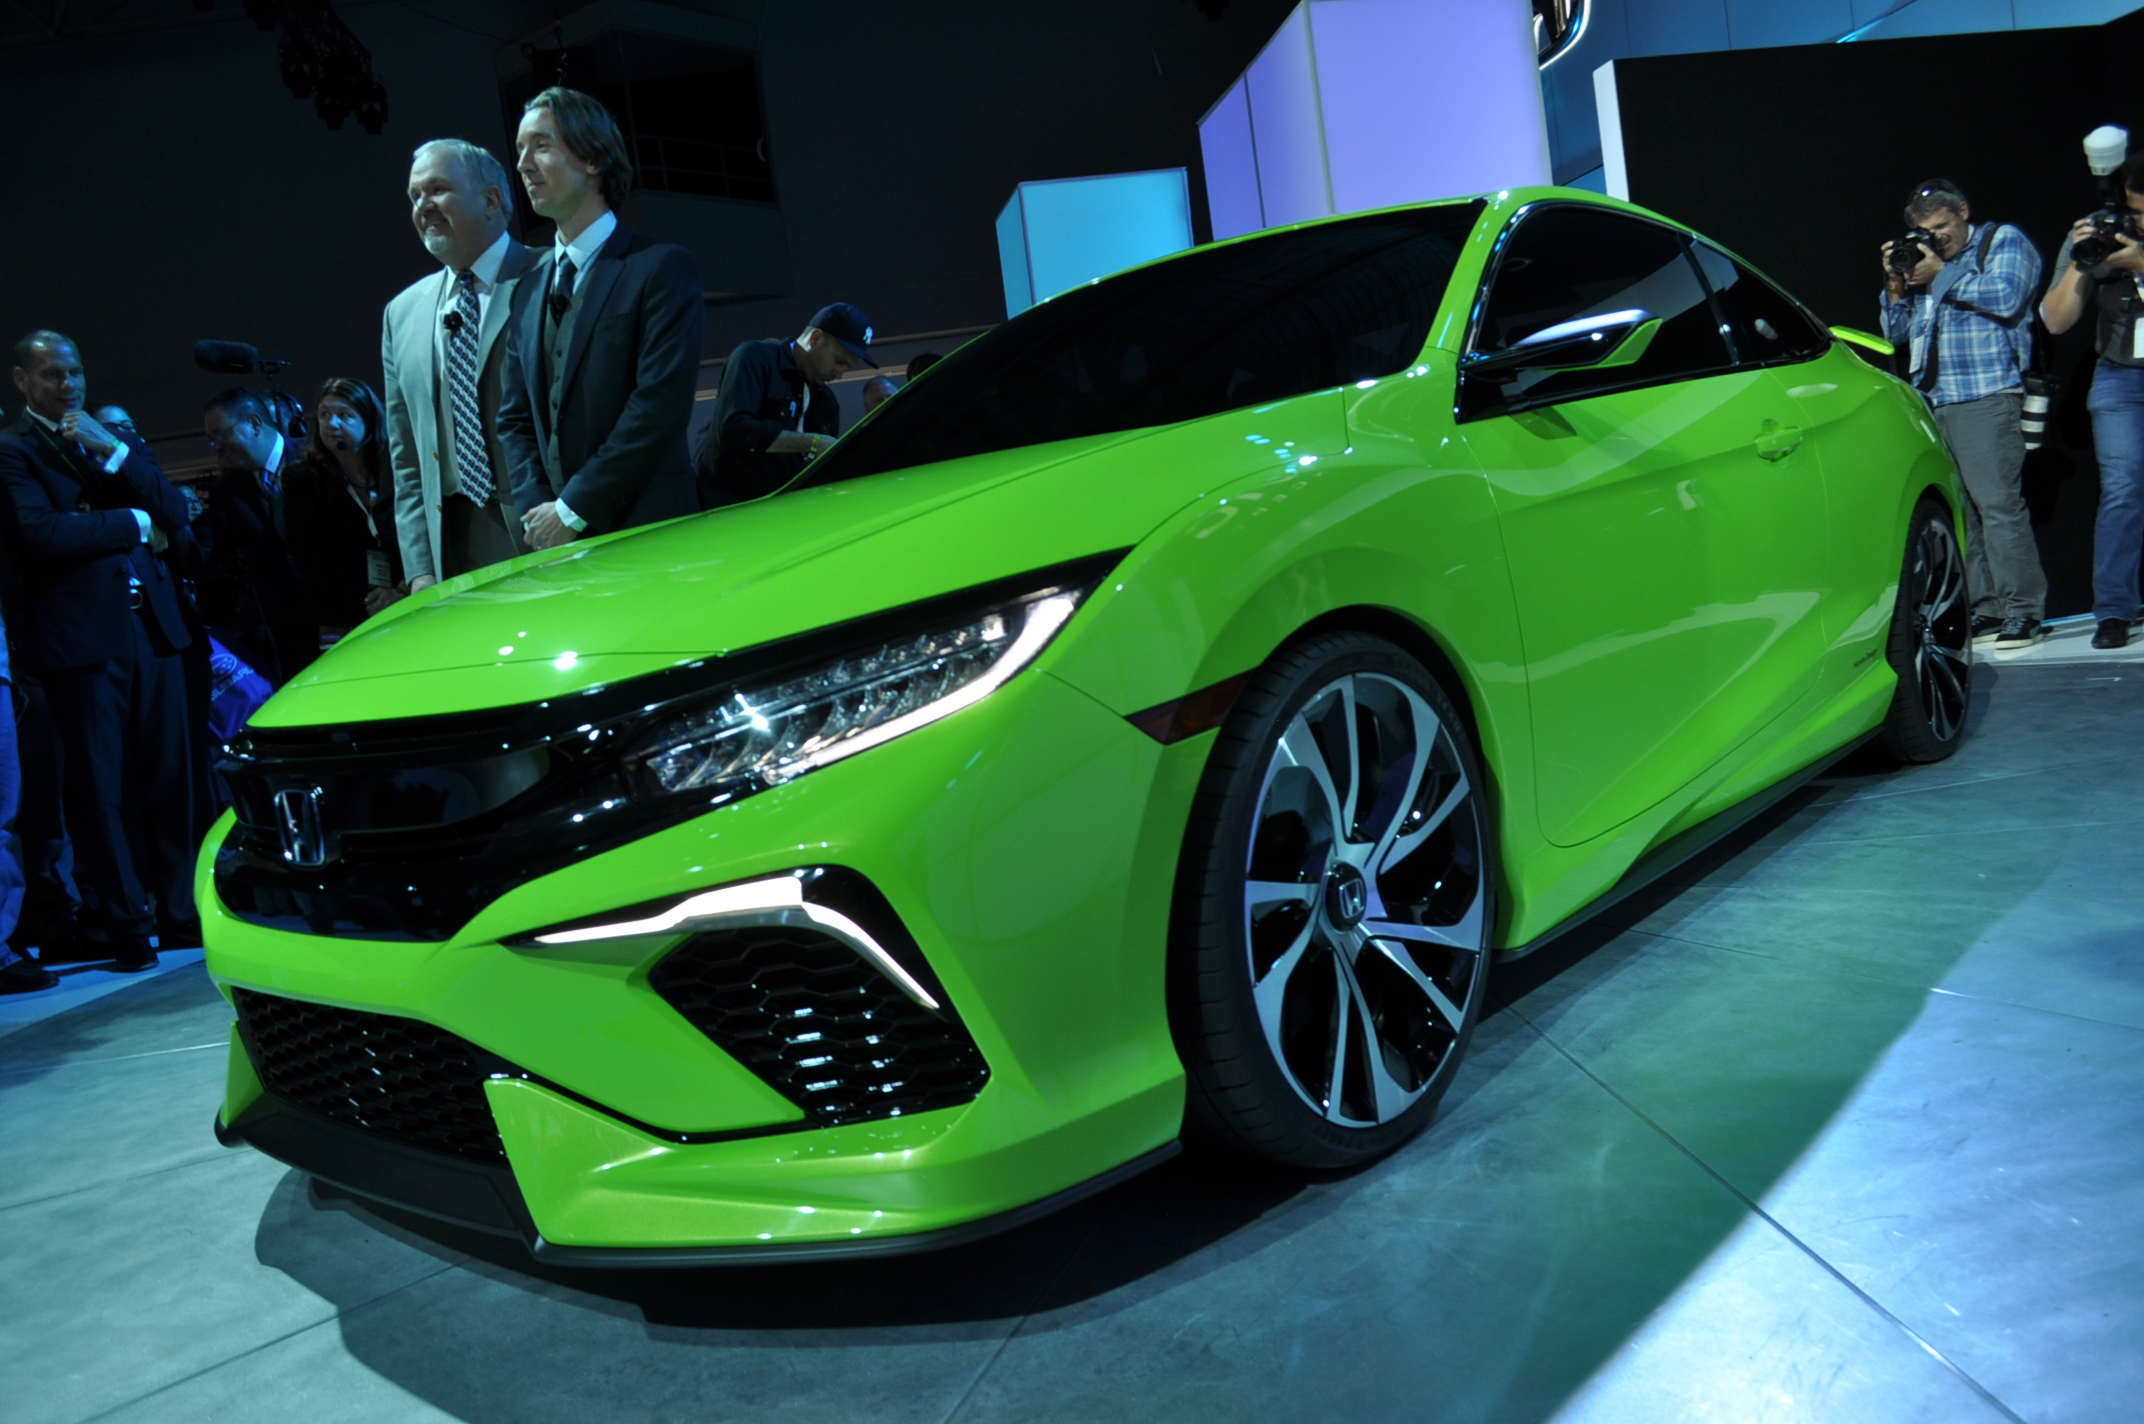 Surprise 2016 Honda Civic Concept At NY Auto Show Previews ...